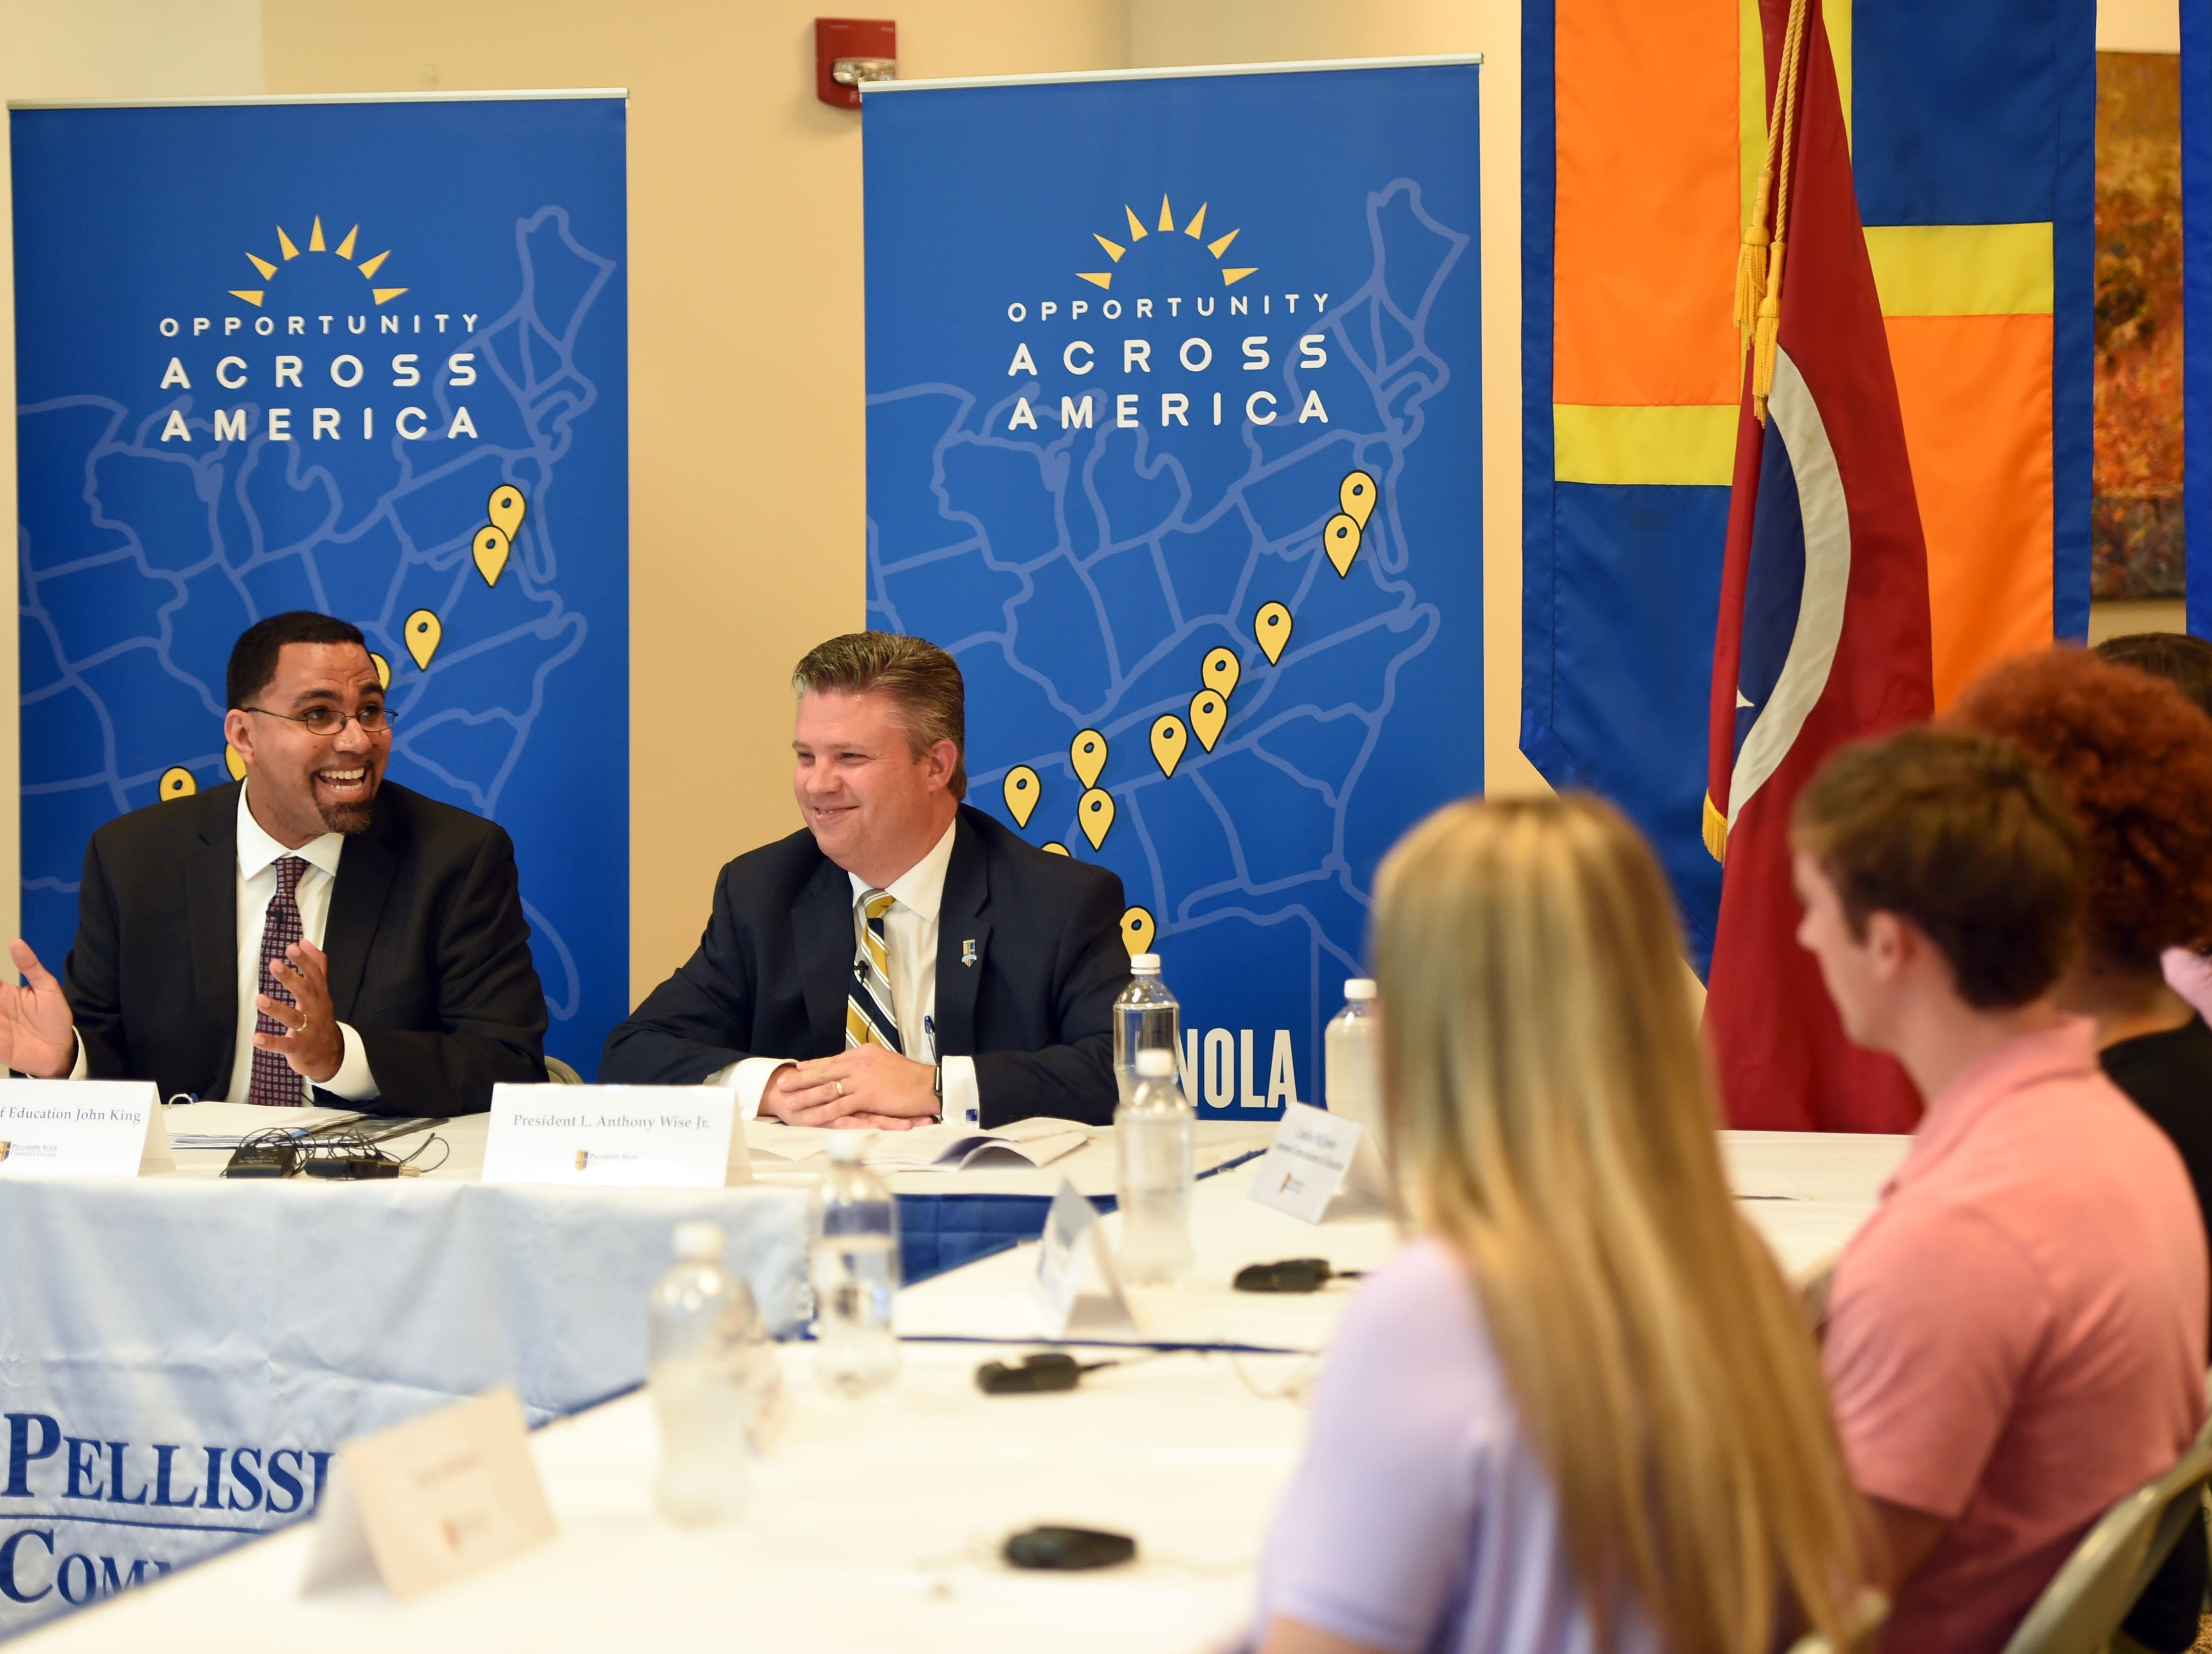 US Education Secretary John King and PSCC president Dr. Anthony Wise, center, lead a countable discussion at Pellissippi State Community College about the American Promise proposal Tuesday Sept. 13, 2016. (AMY SMOTHERMAN BURGESS/NEWS SENTINEL)